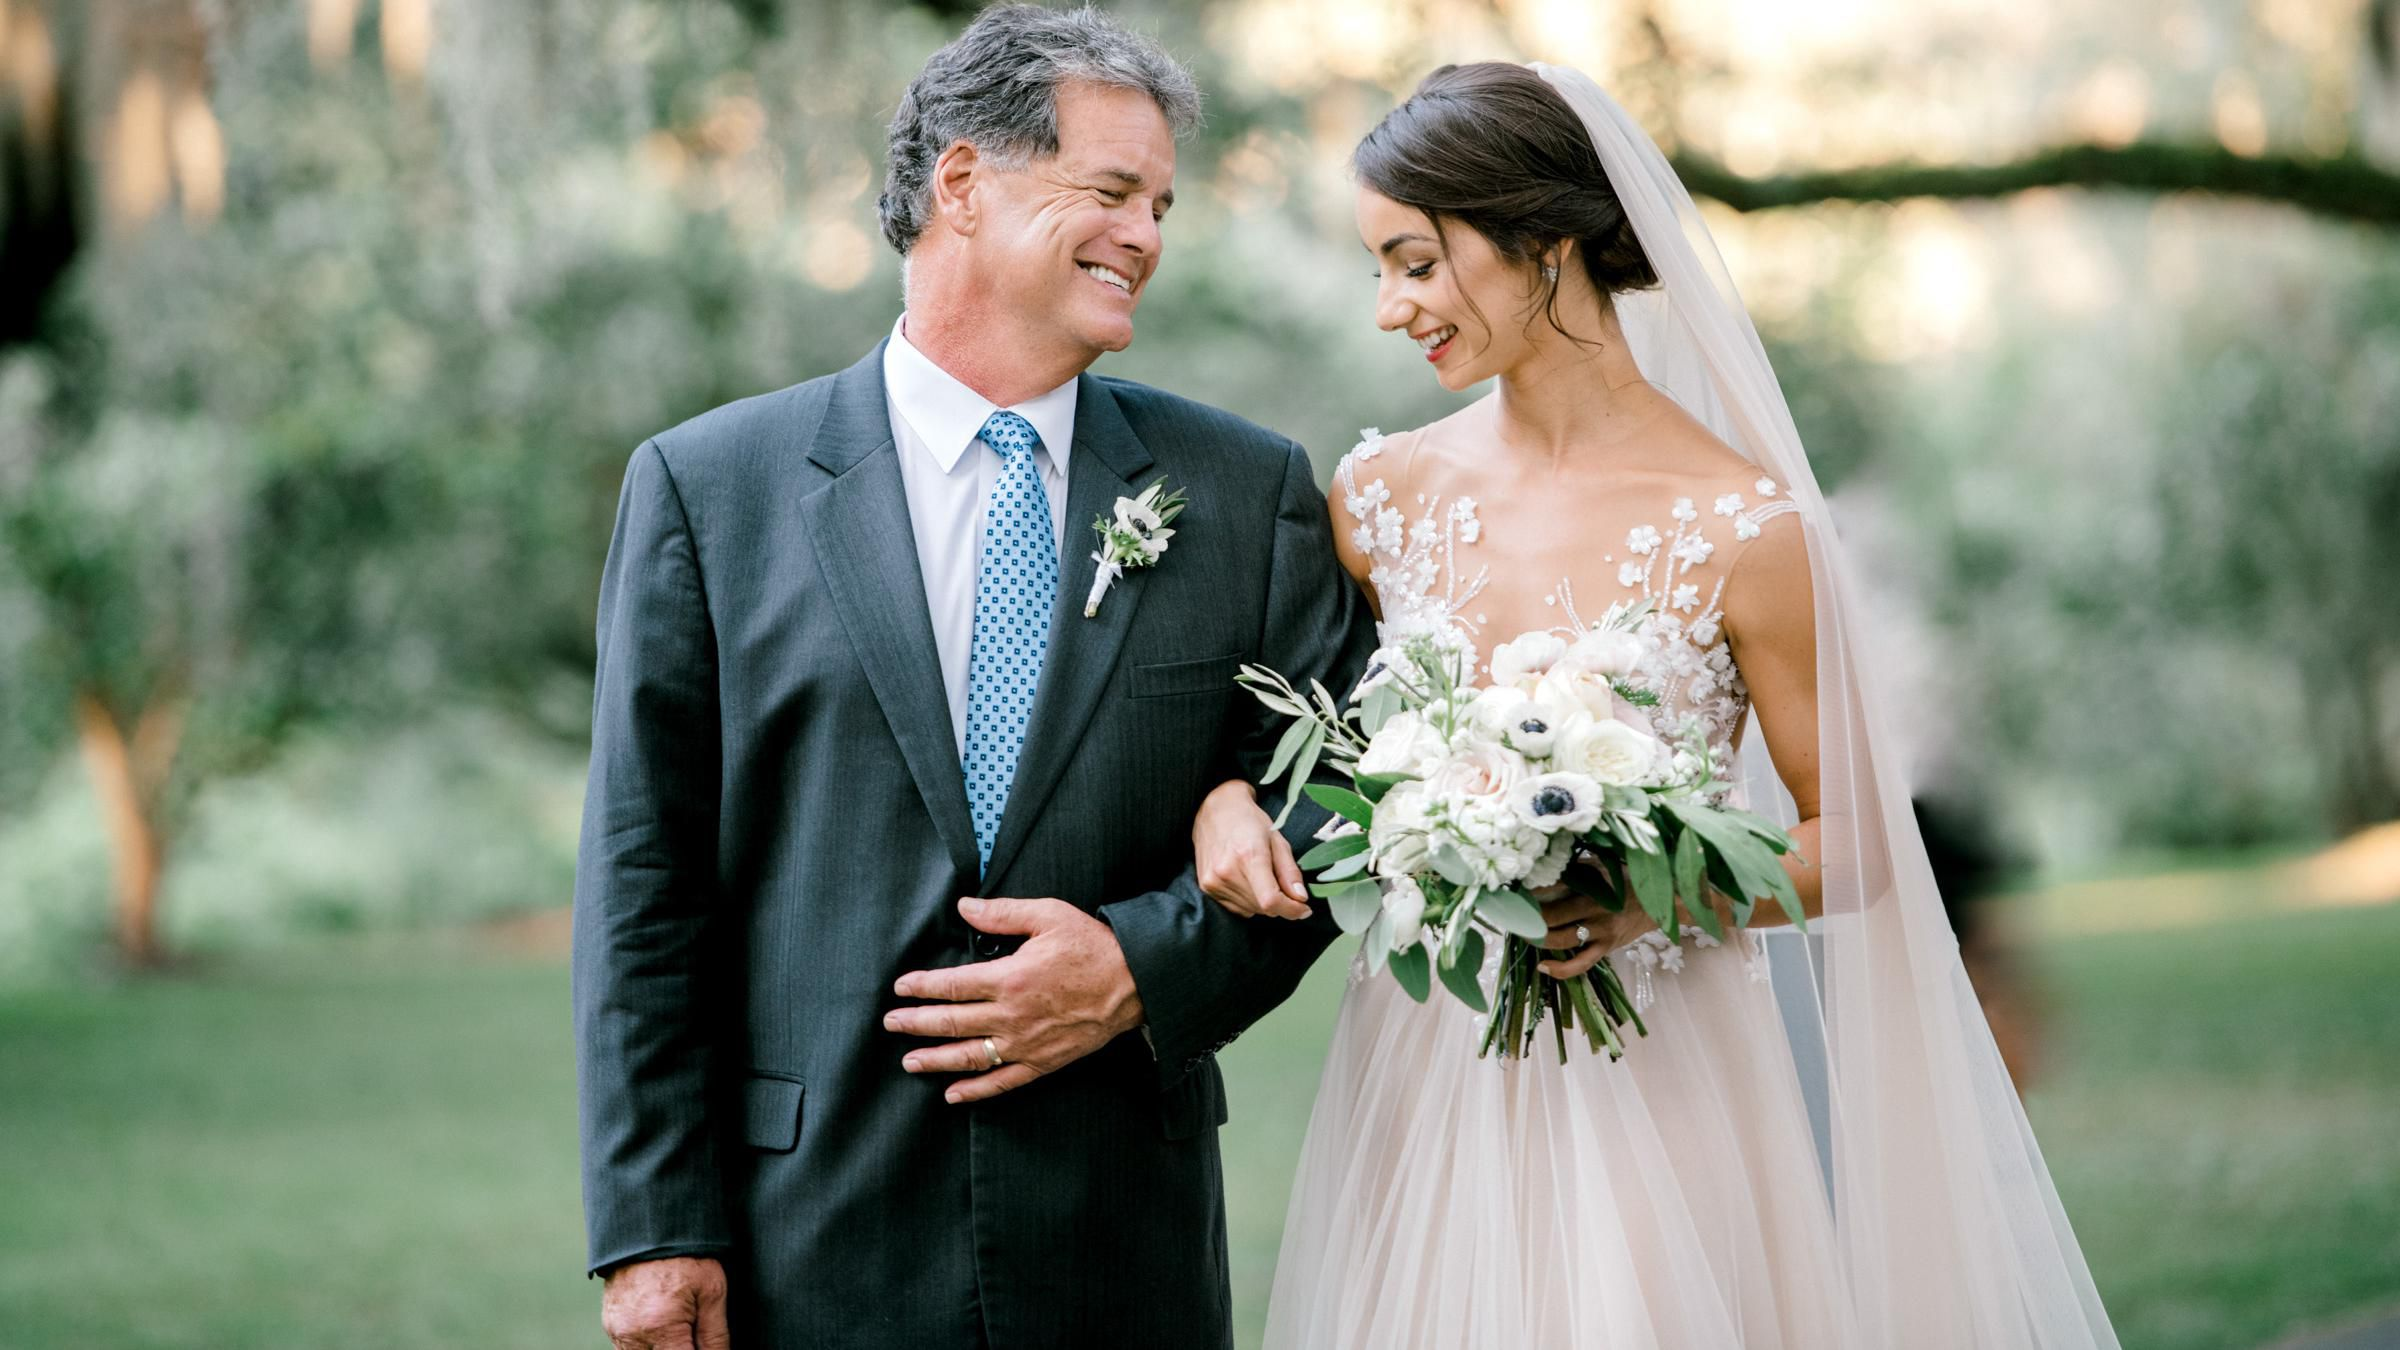 A Bride and her Father smiling at each other on her wedding day.